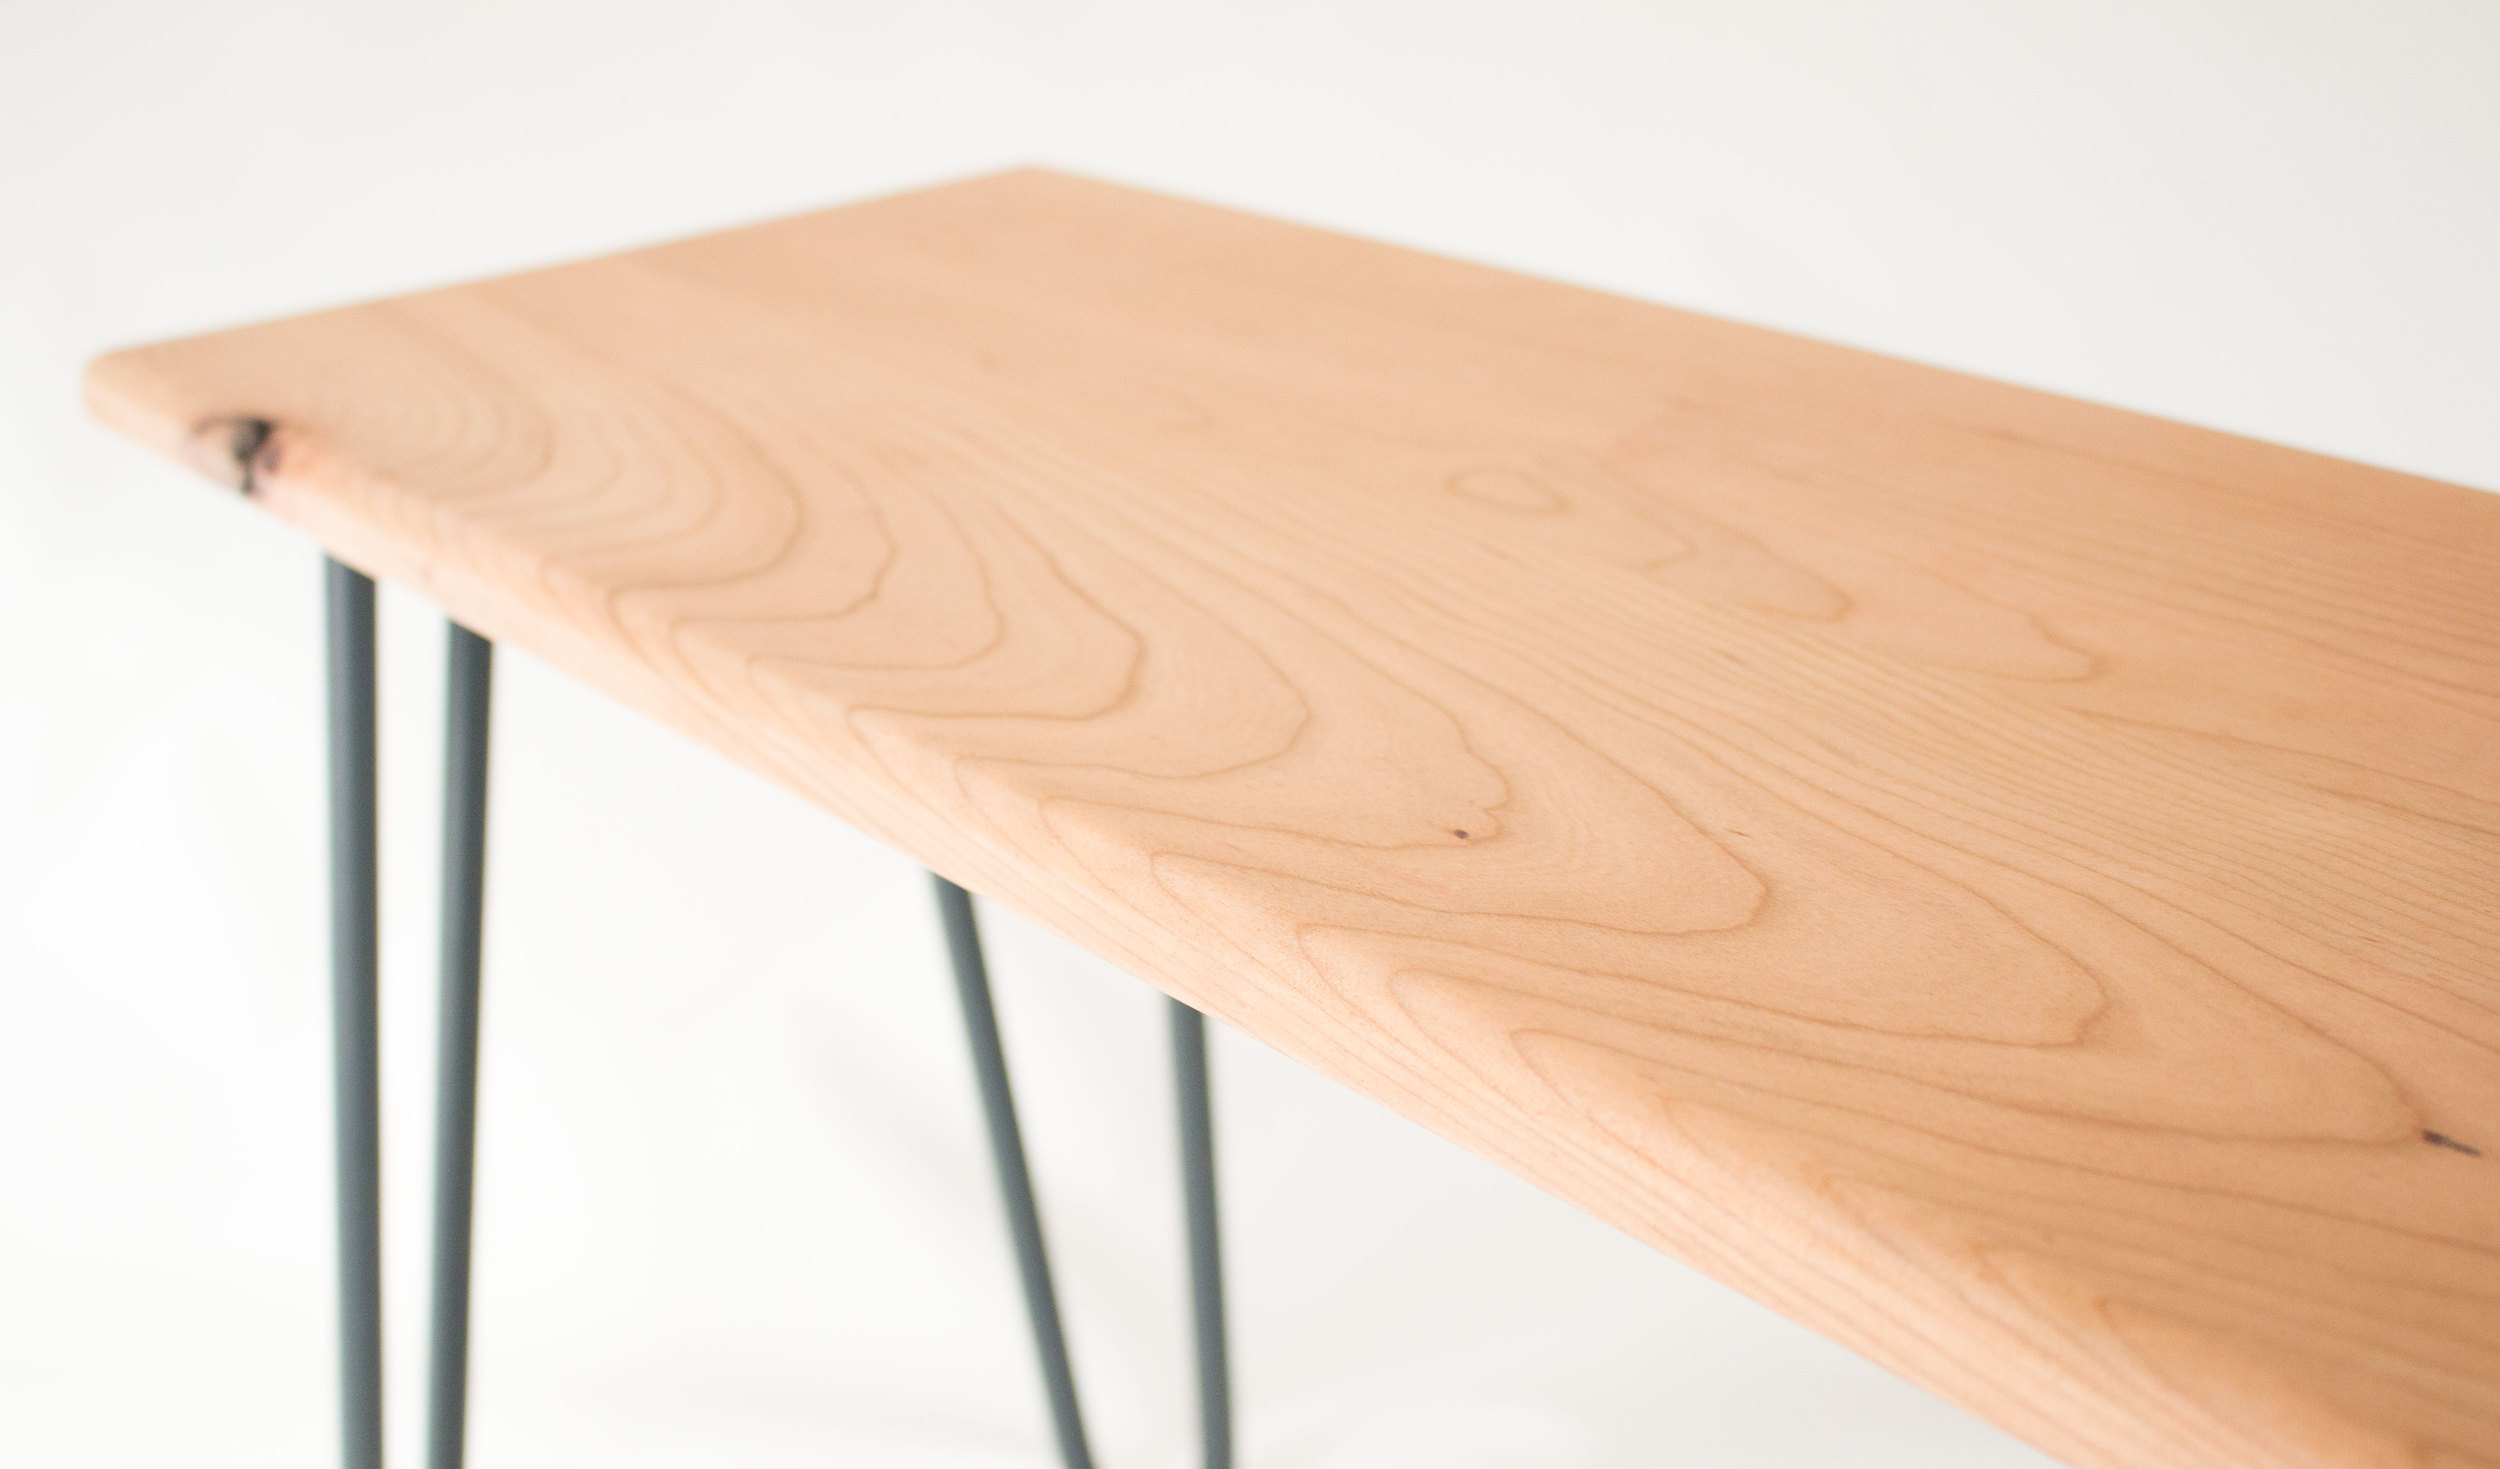 Cherry wood bench by Cord Industries, shown with lacquered steel hairpin legs.